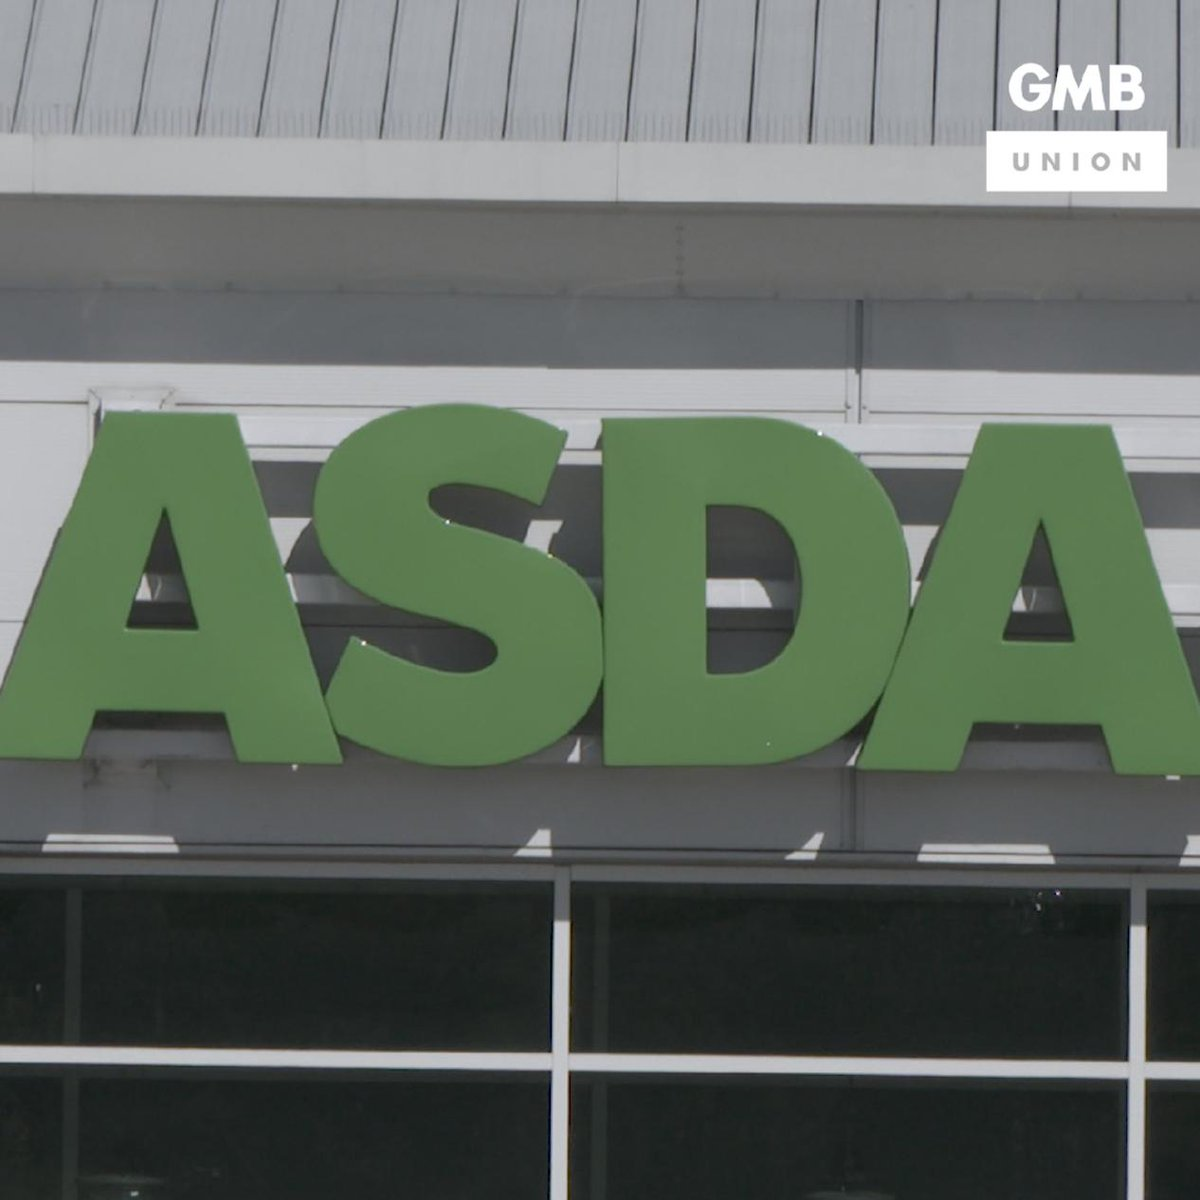 Shameful that Asda bosses are threatening hard-working staff with the sack if they don't agree to a punishing contract. Shoppers will be horrified. Its time for Asda to listen to its workers 👇